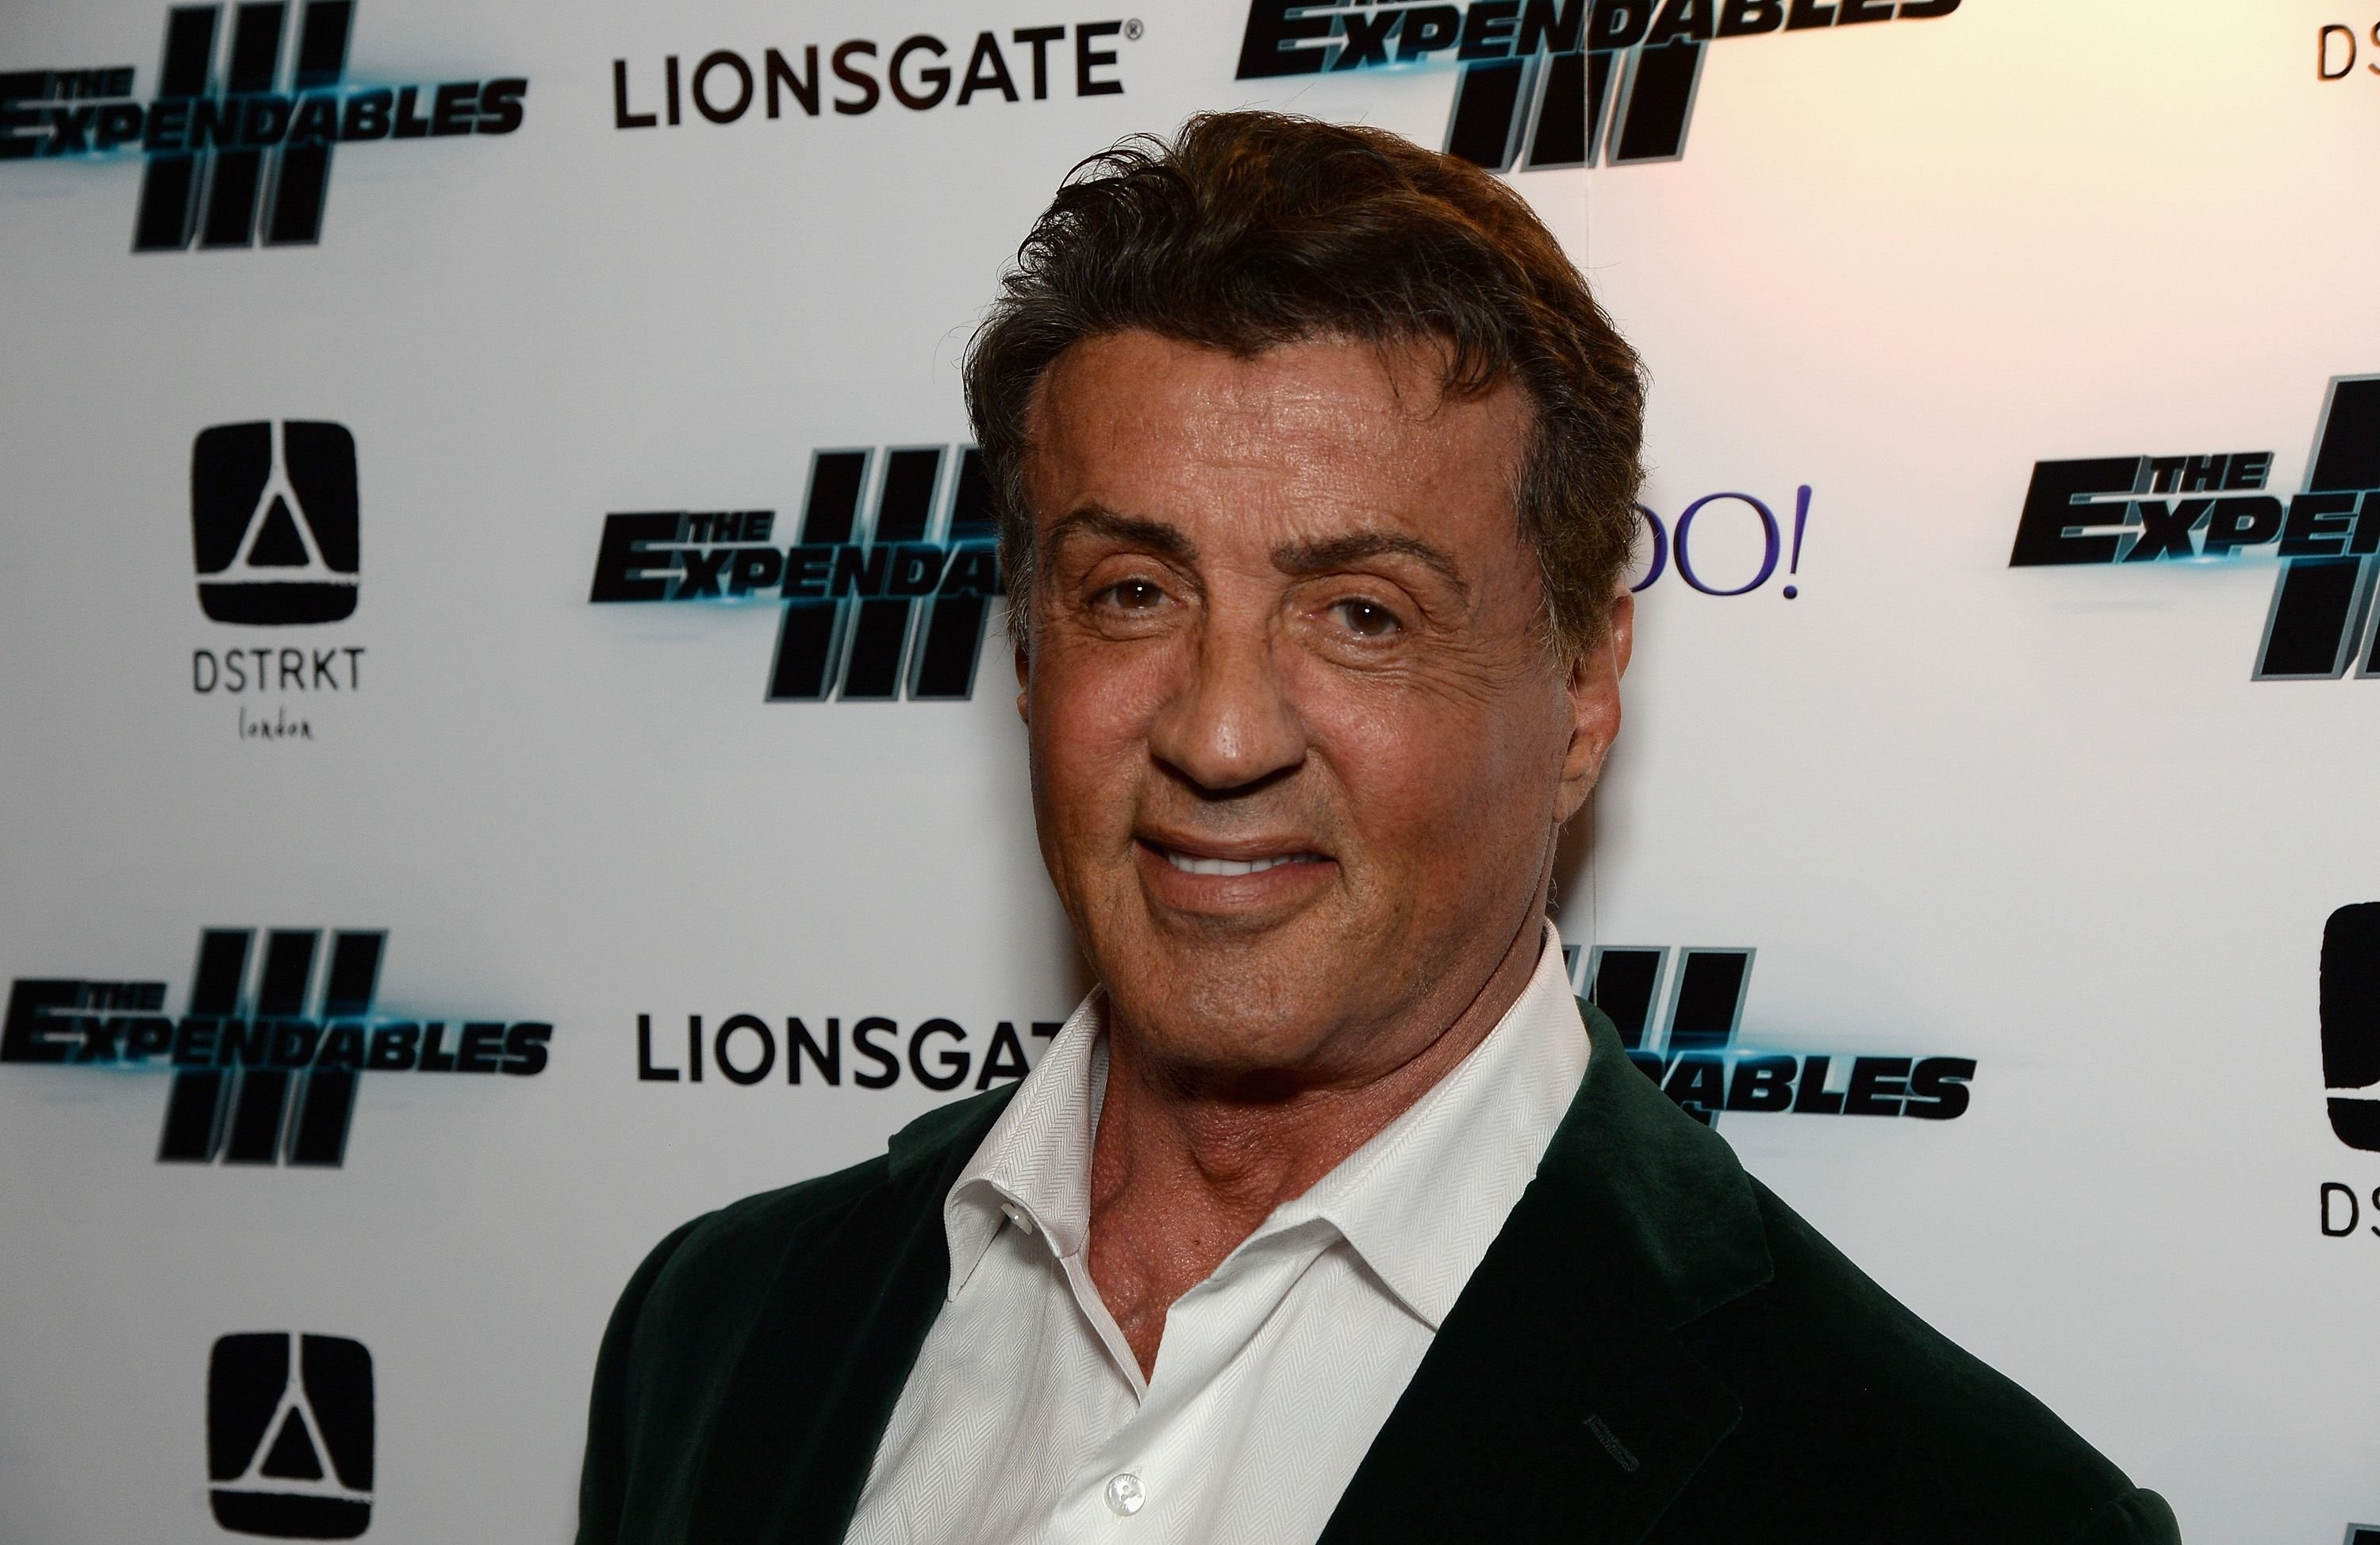 """Sylvester Stallone at """"The Expendables 3"""" after-party at Dstrkt on August 4, 2014, in London, England   Photo: Dave J Hogan/Getty Images"""